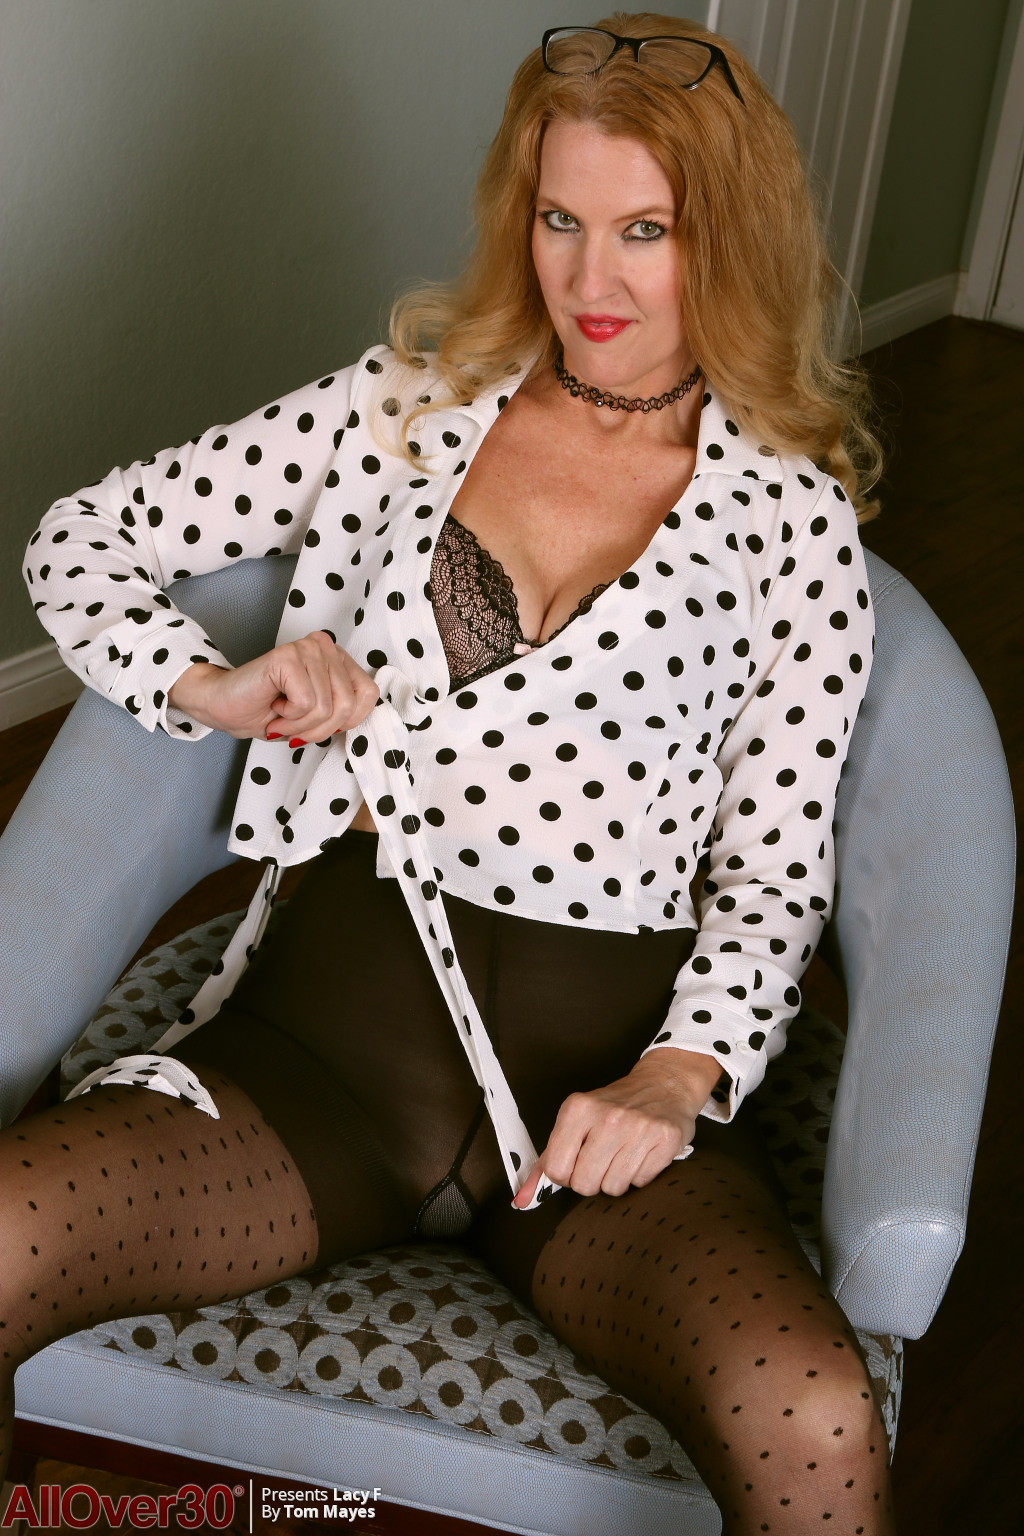 lacy-f-polka-dots-and-stockings-06